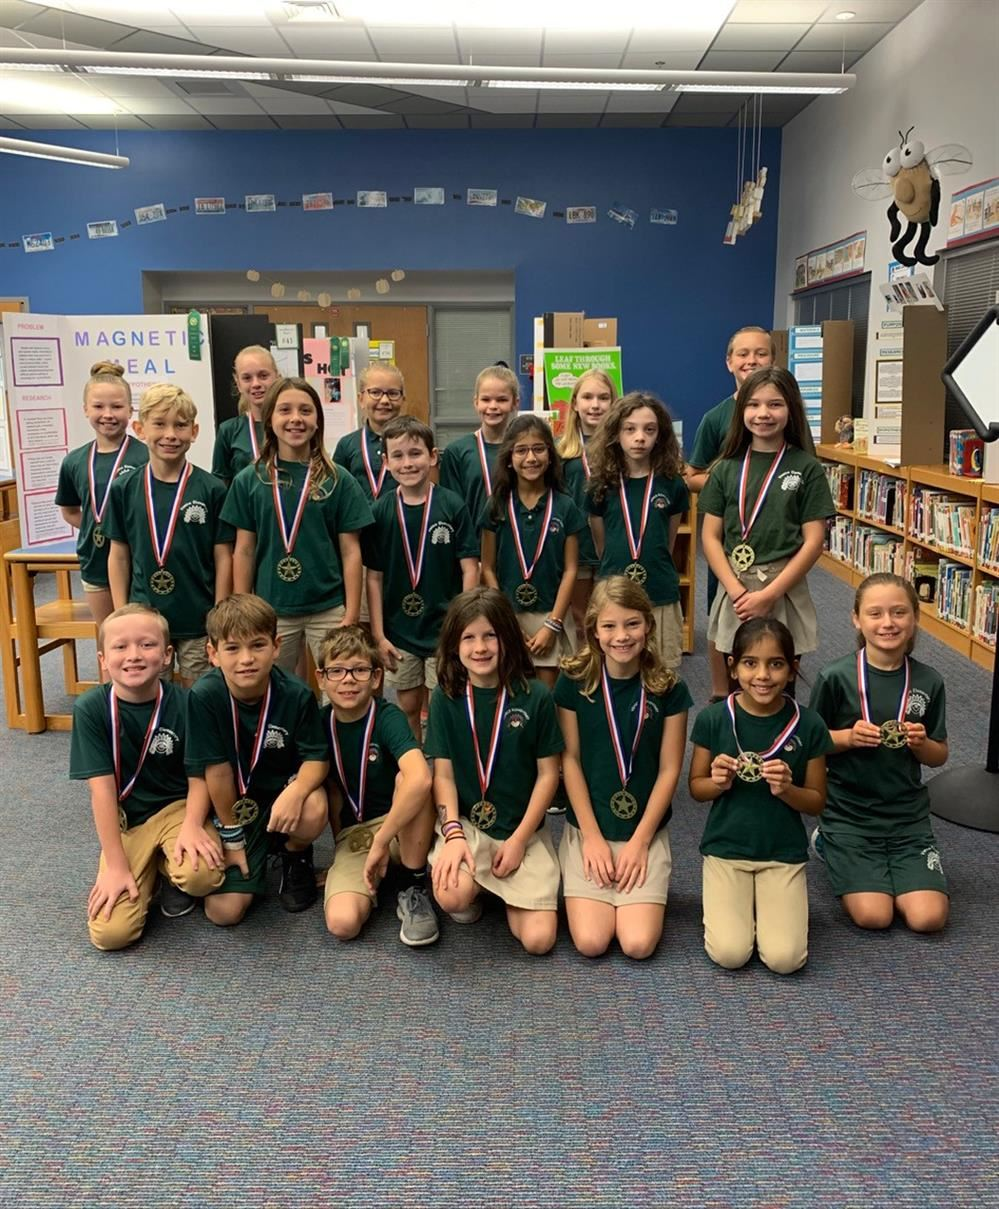 Congratulations to our STEM fair winners. They will compete at the county level in 2020.